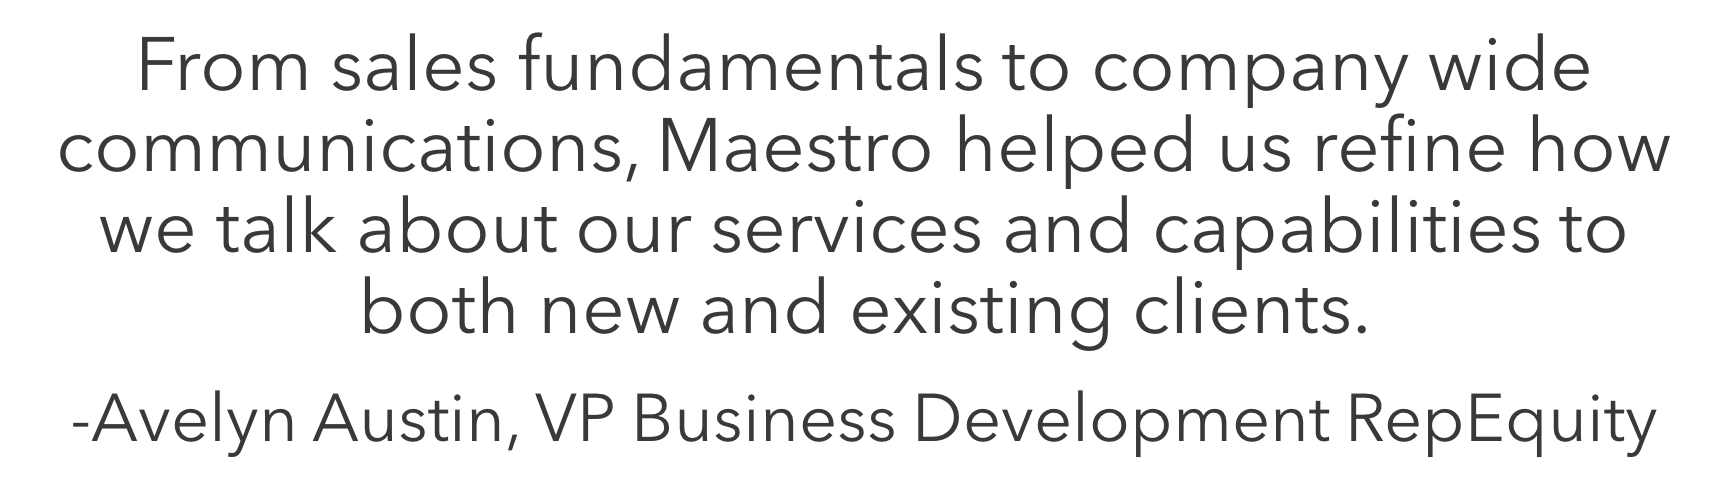 Maestro Group's research-backed advise and training continues to help myself and my team communicate the value of our product, and create mutually beneficial relationships with our clients.